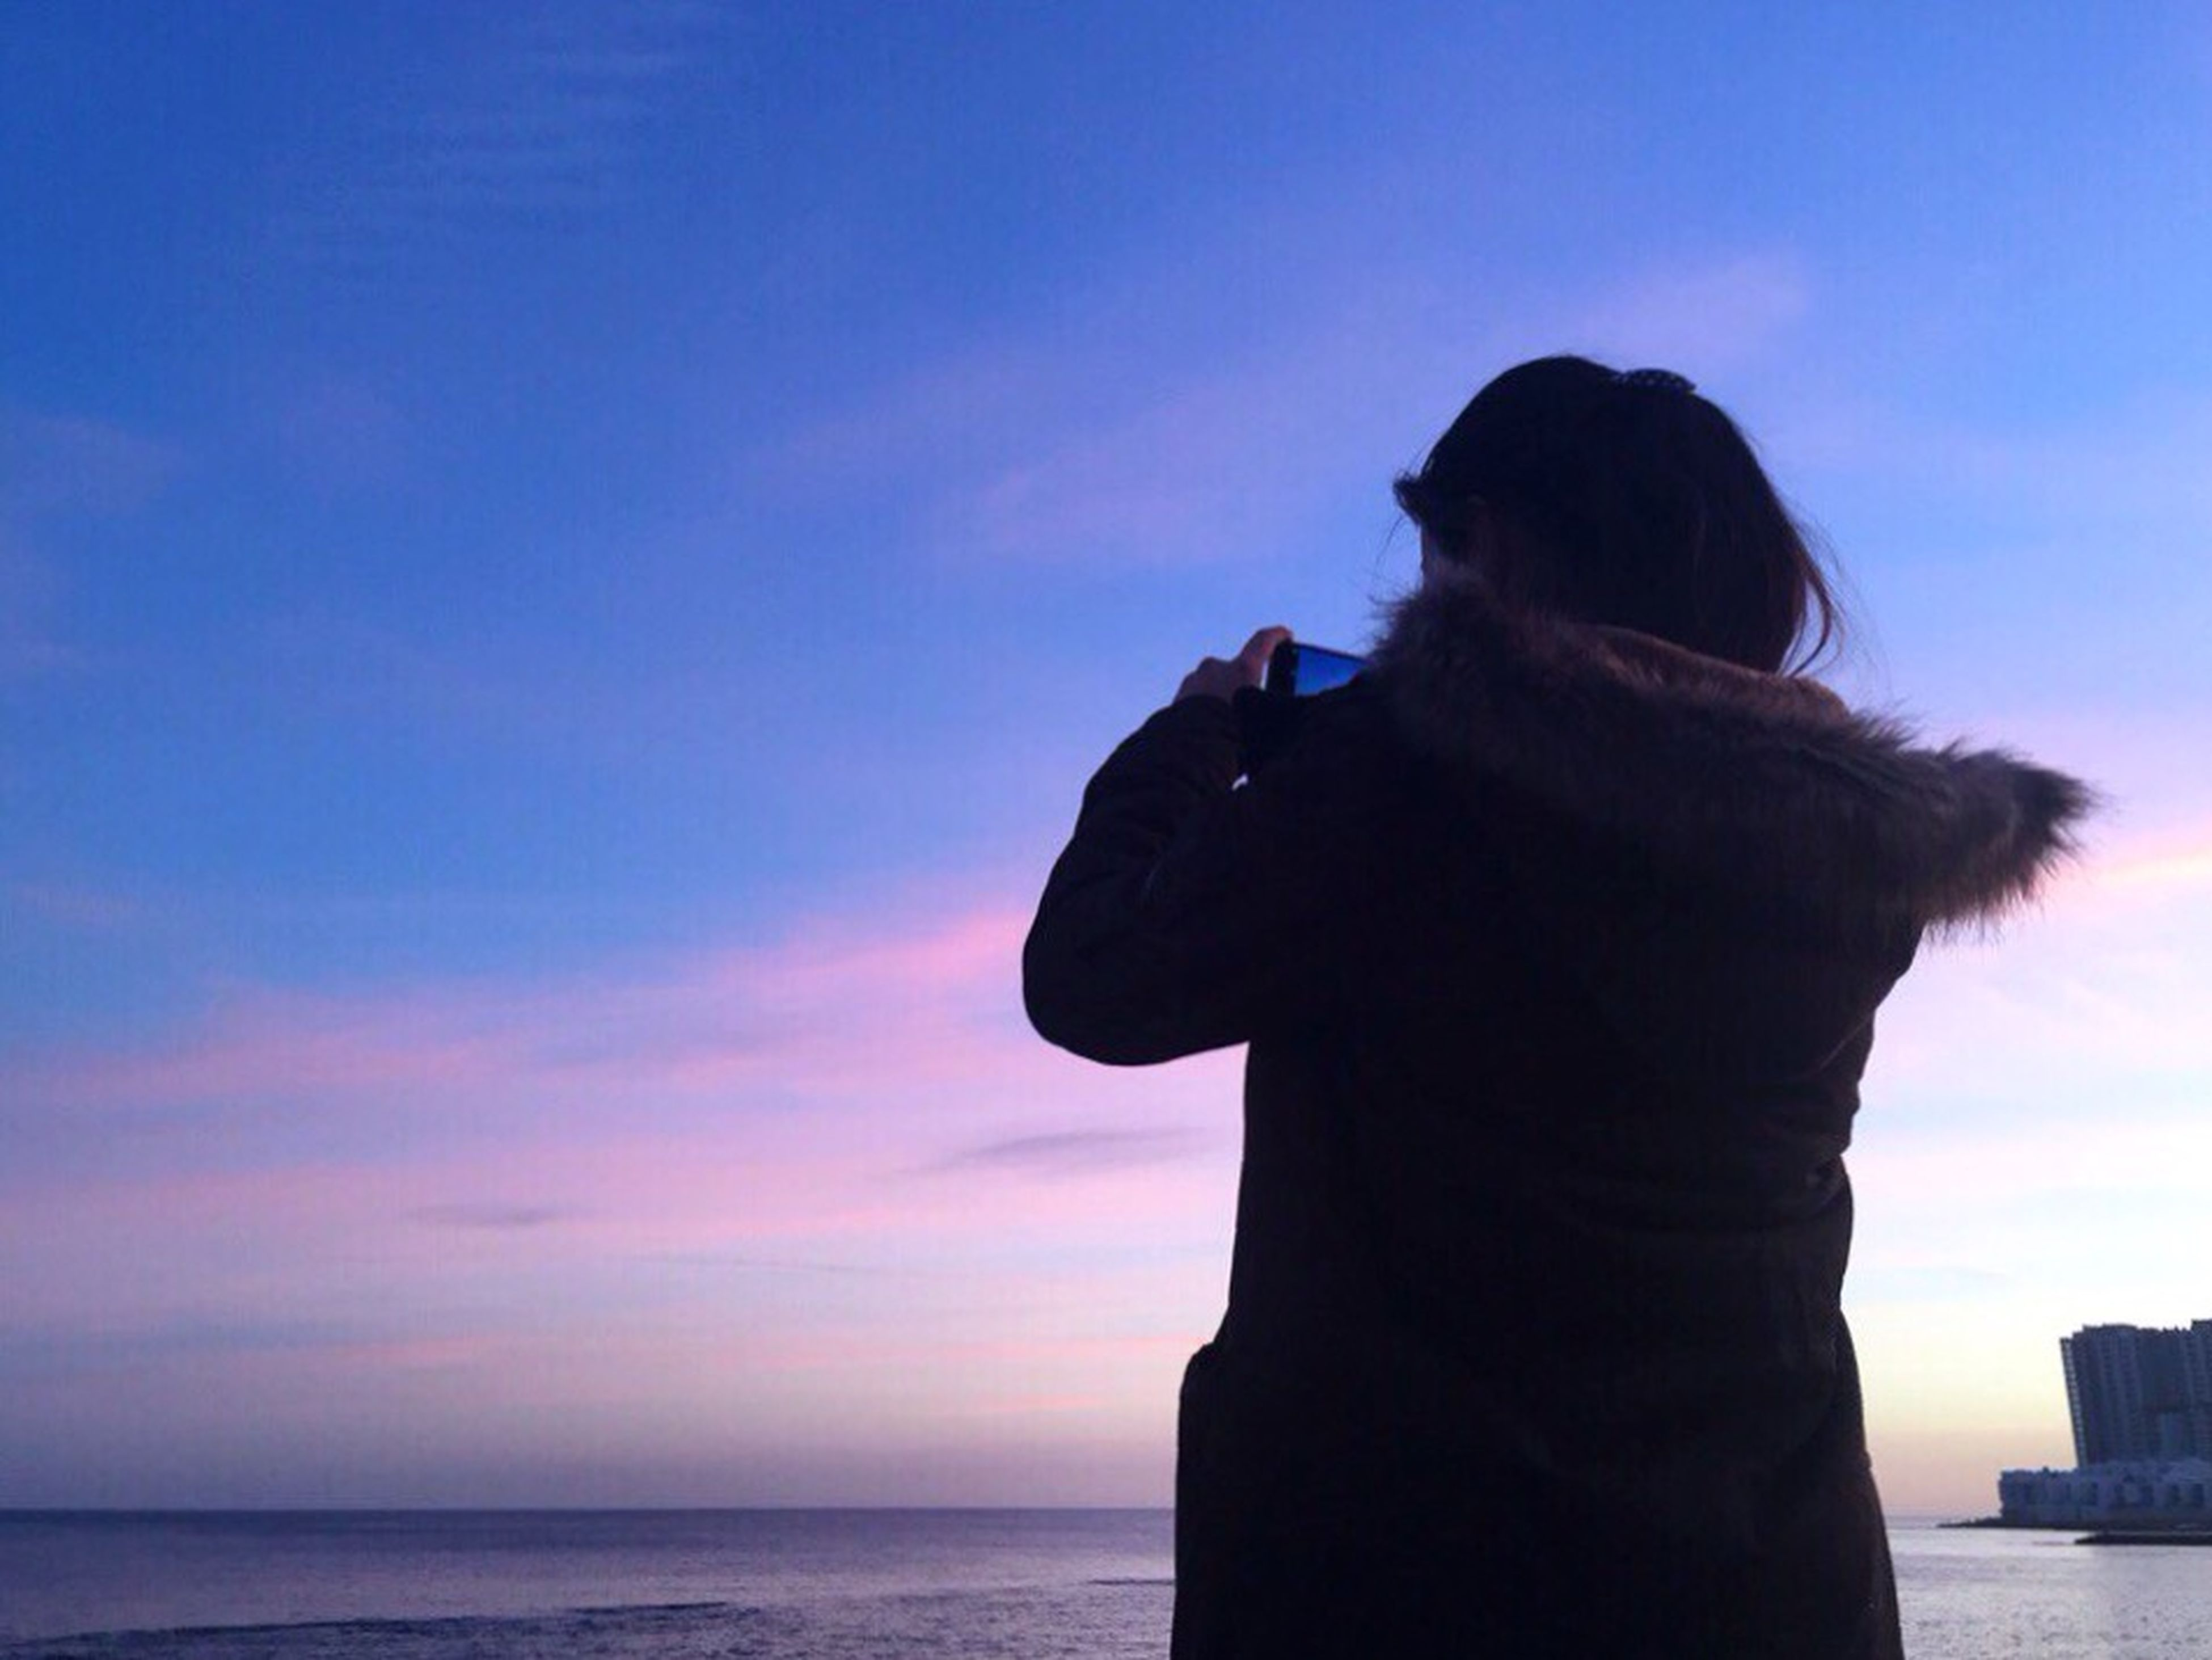 sea, water, horizon over water, sky, sunset, silhouette, tranquility, scenics, tranquil scene, beach, beauty in nature, nature, standing, idyllic, shore, rock - object, sculpture, one person, cloud, cloud - sky